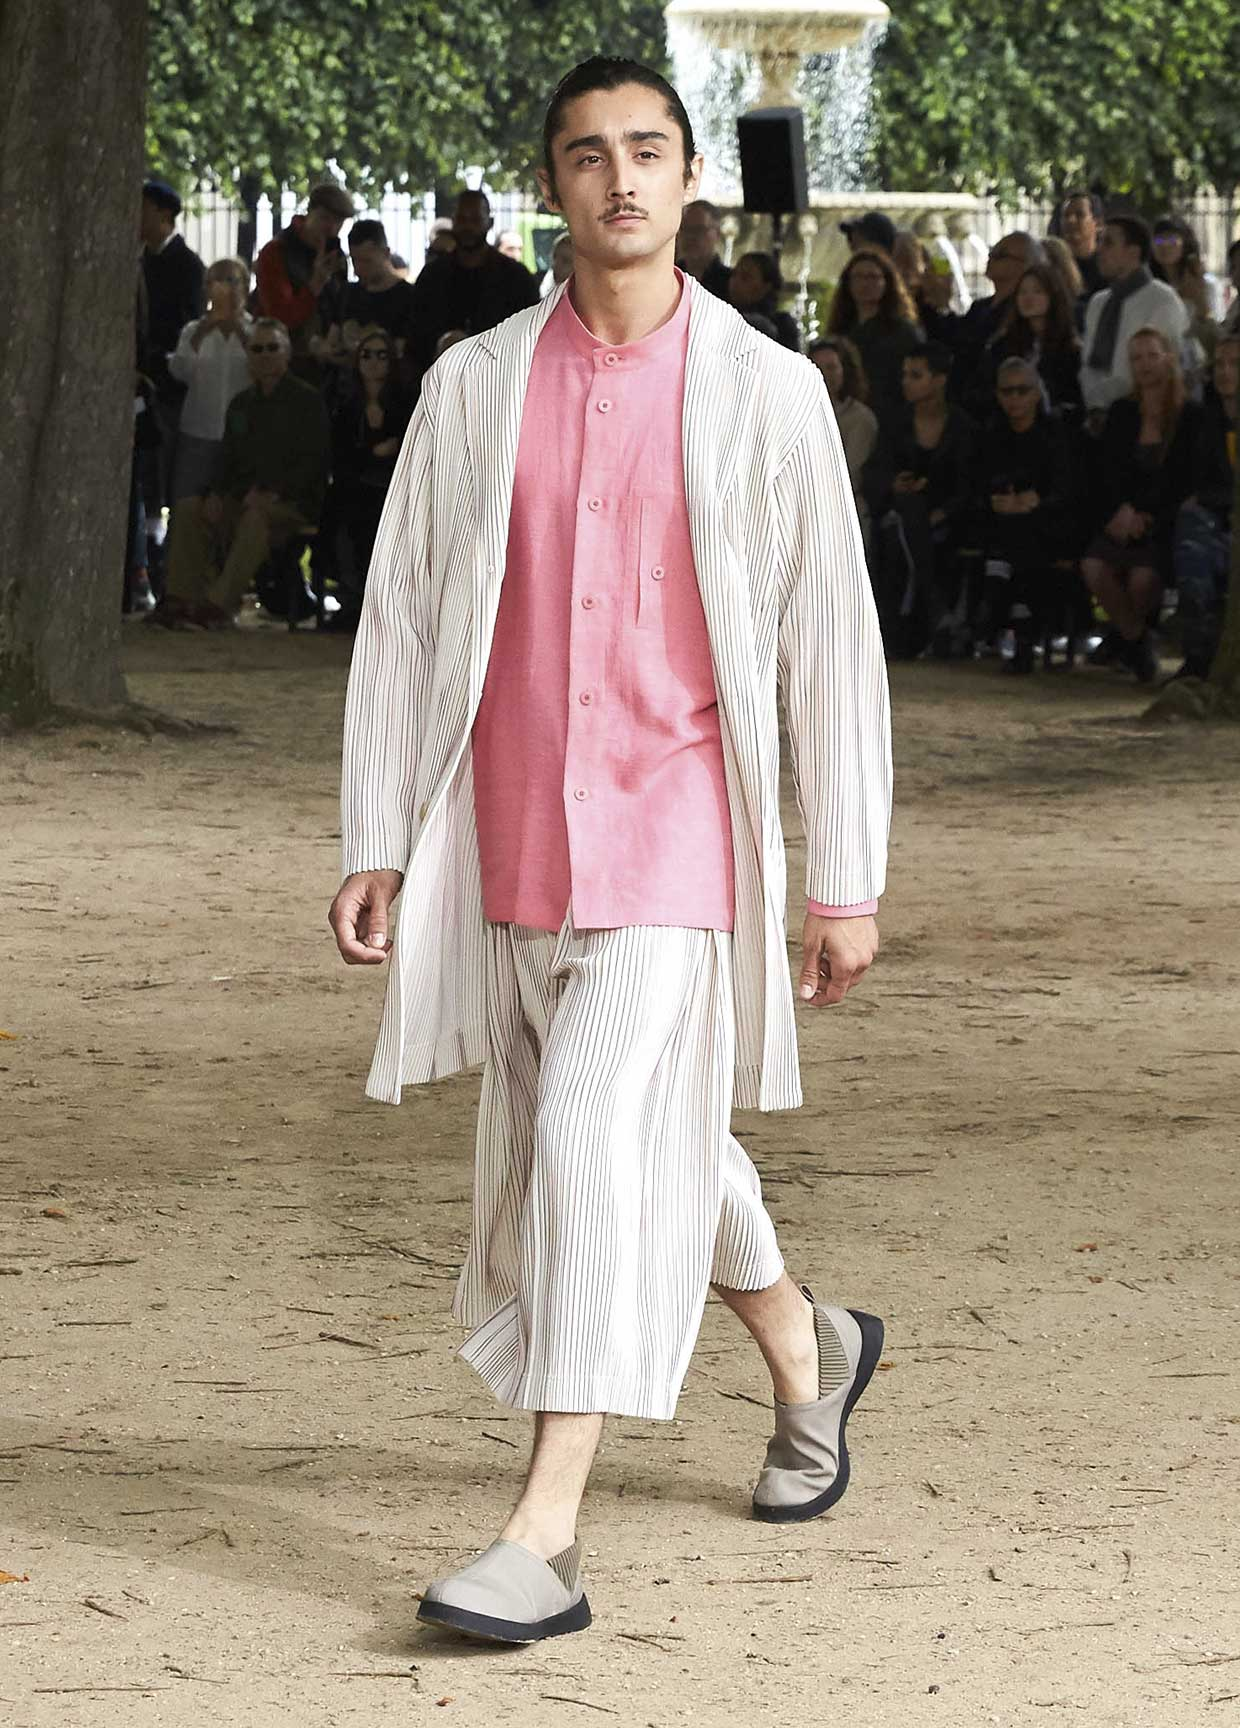 Issey Miyake Homme Plissé SS20 Show